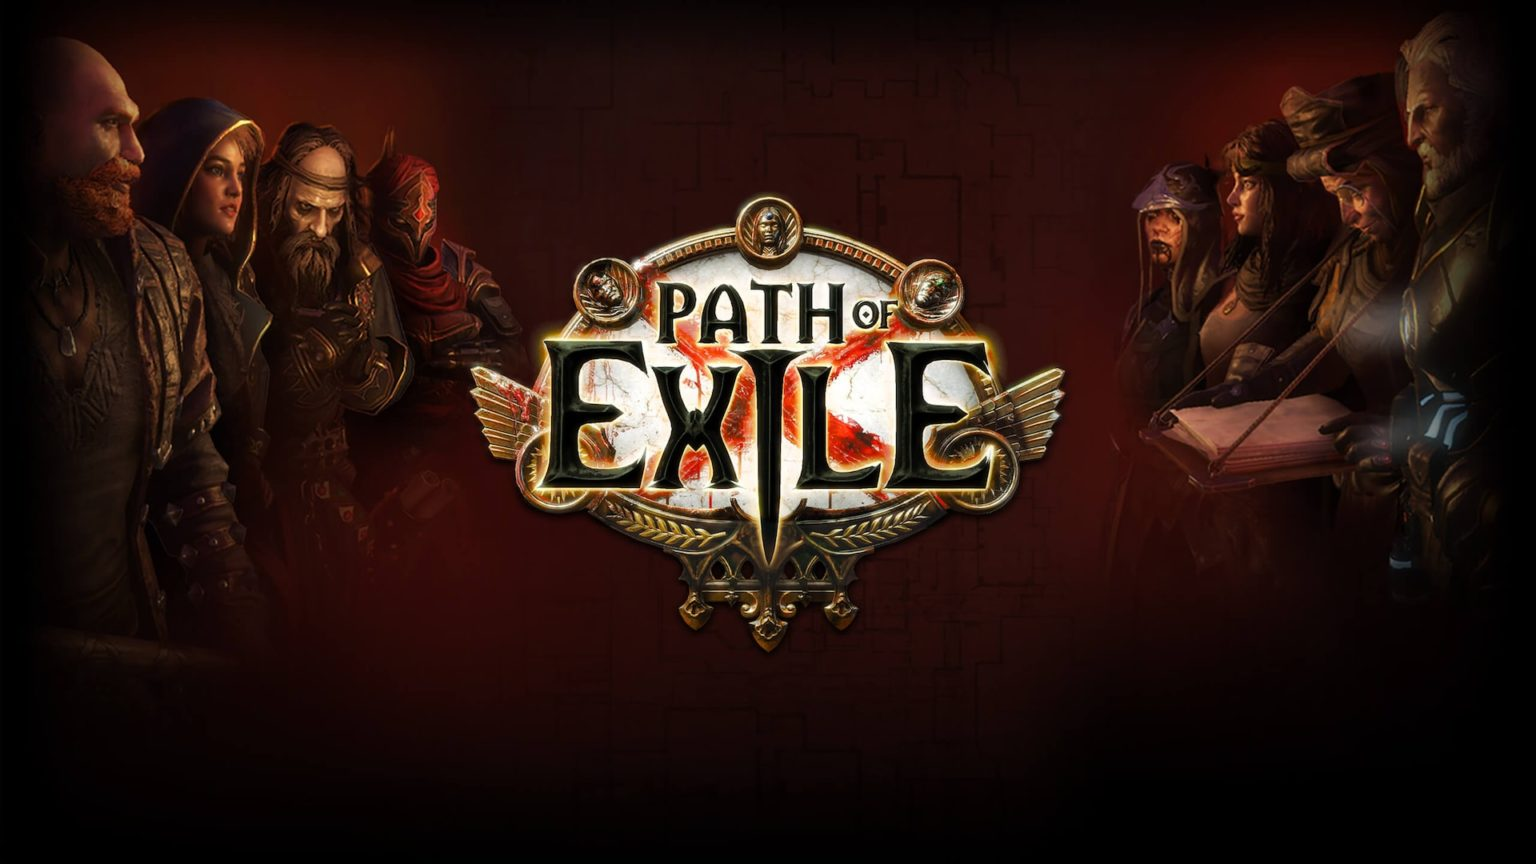 # 1 - Path of Exile